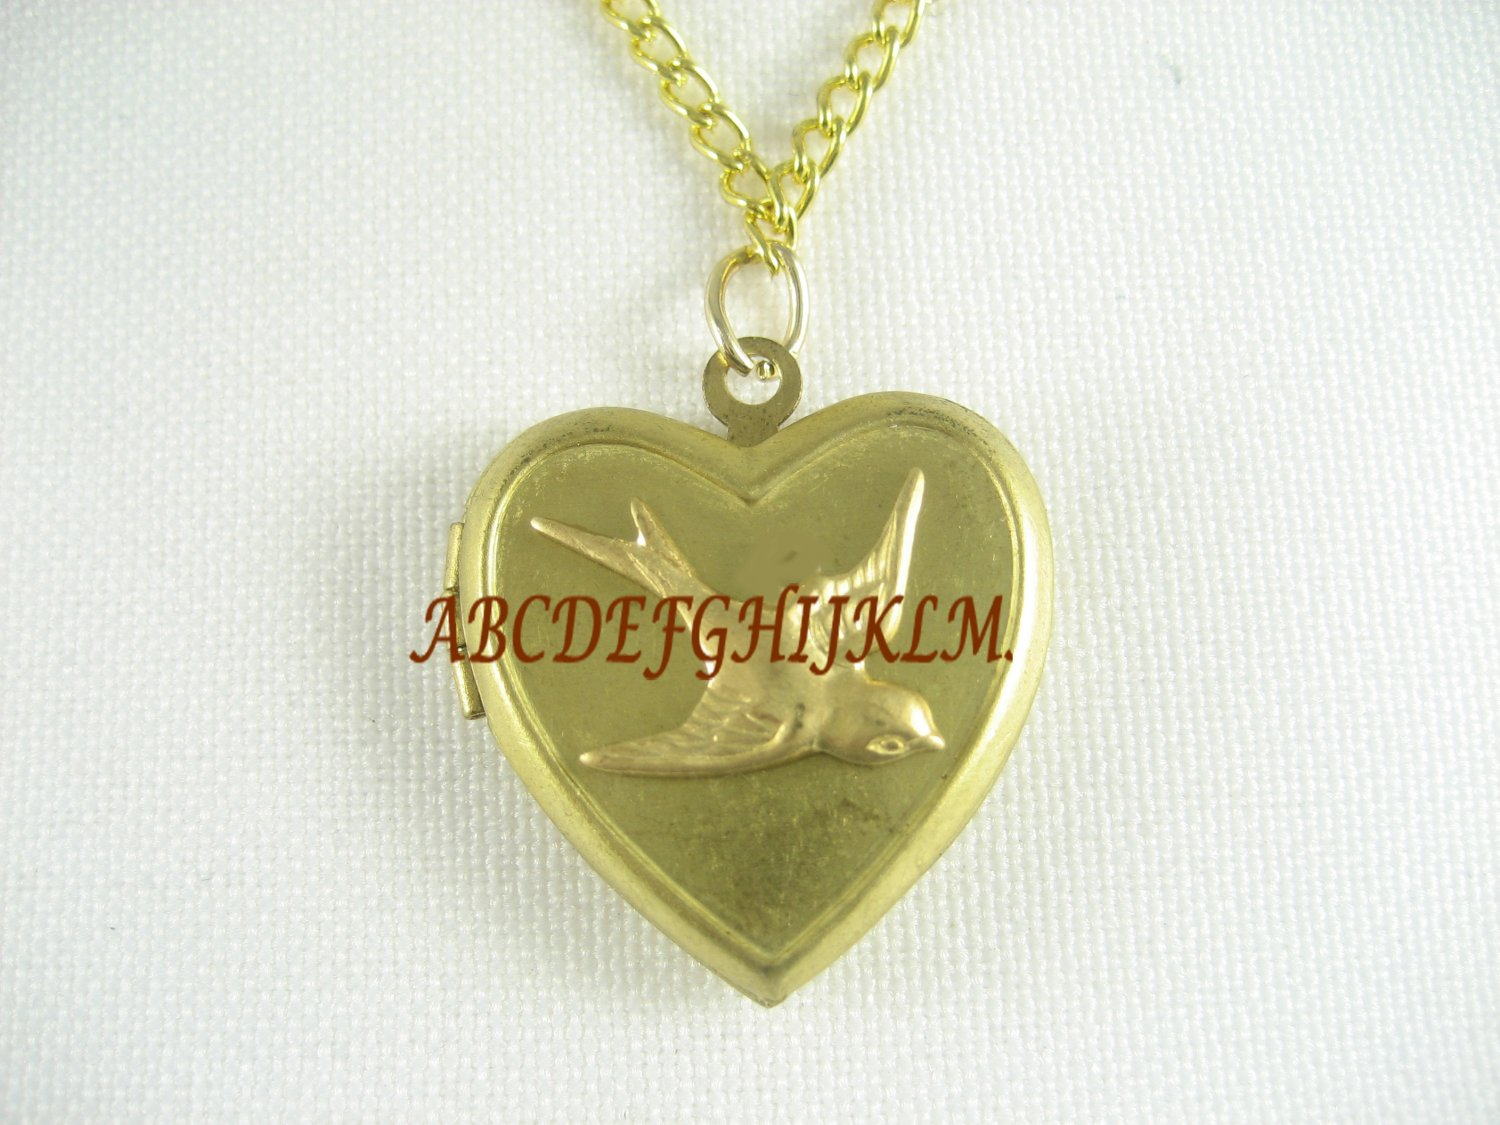 VICTORIAN BIRD VINTAGE ANTIQUE HEART LOCKET NECKLACE